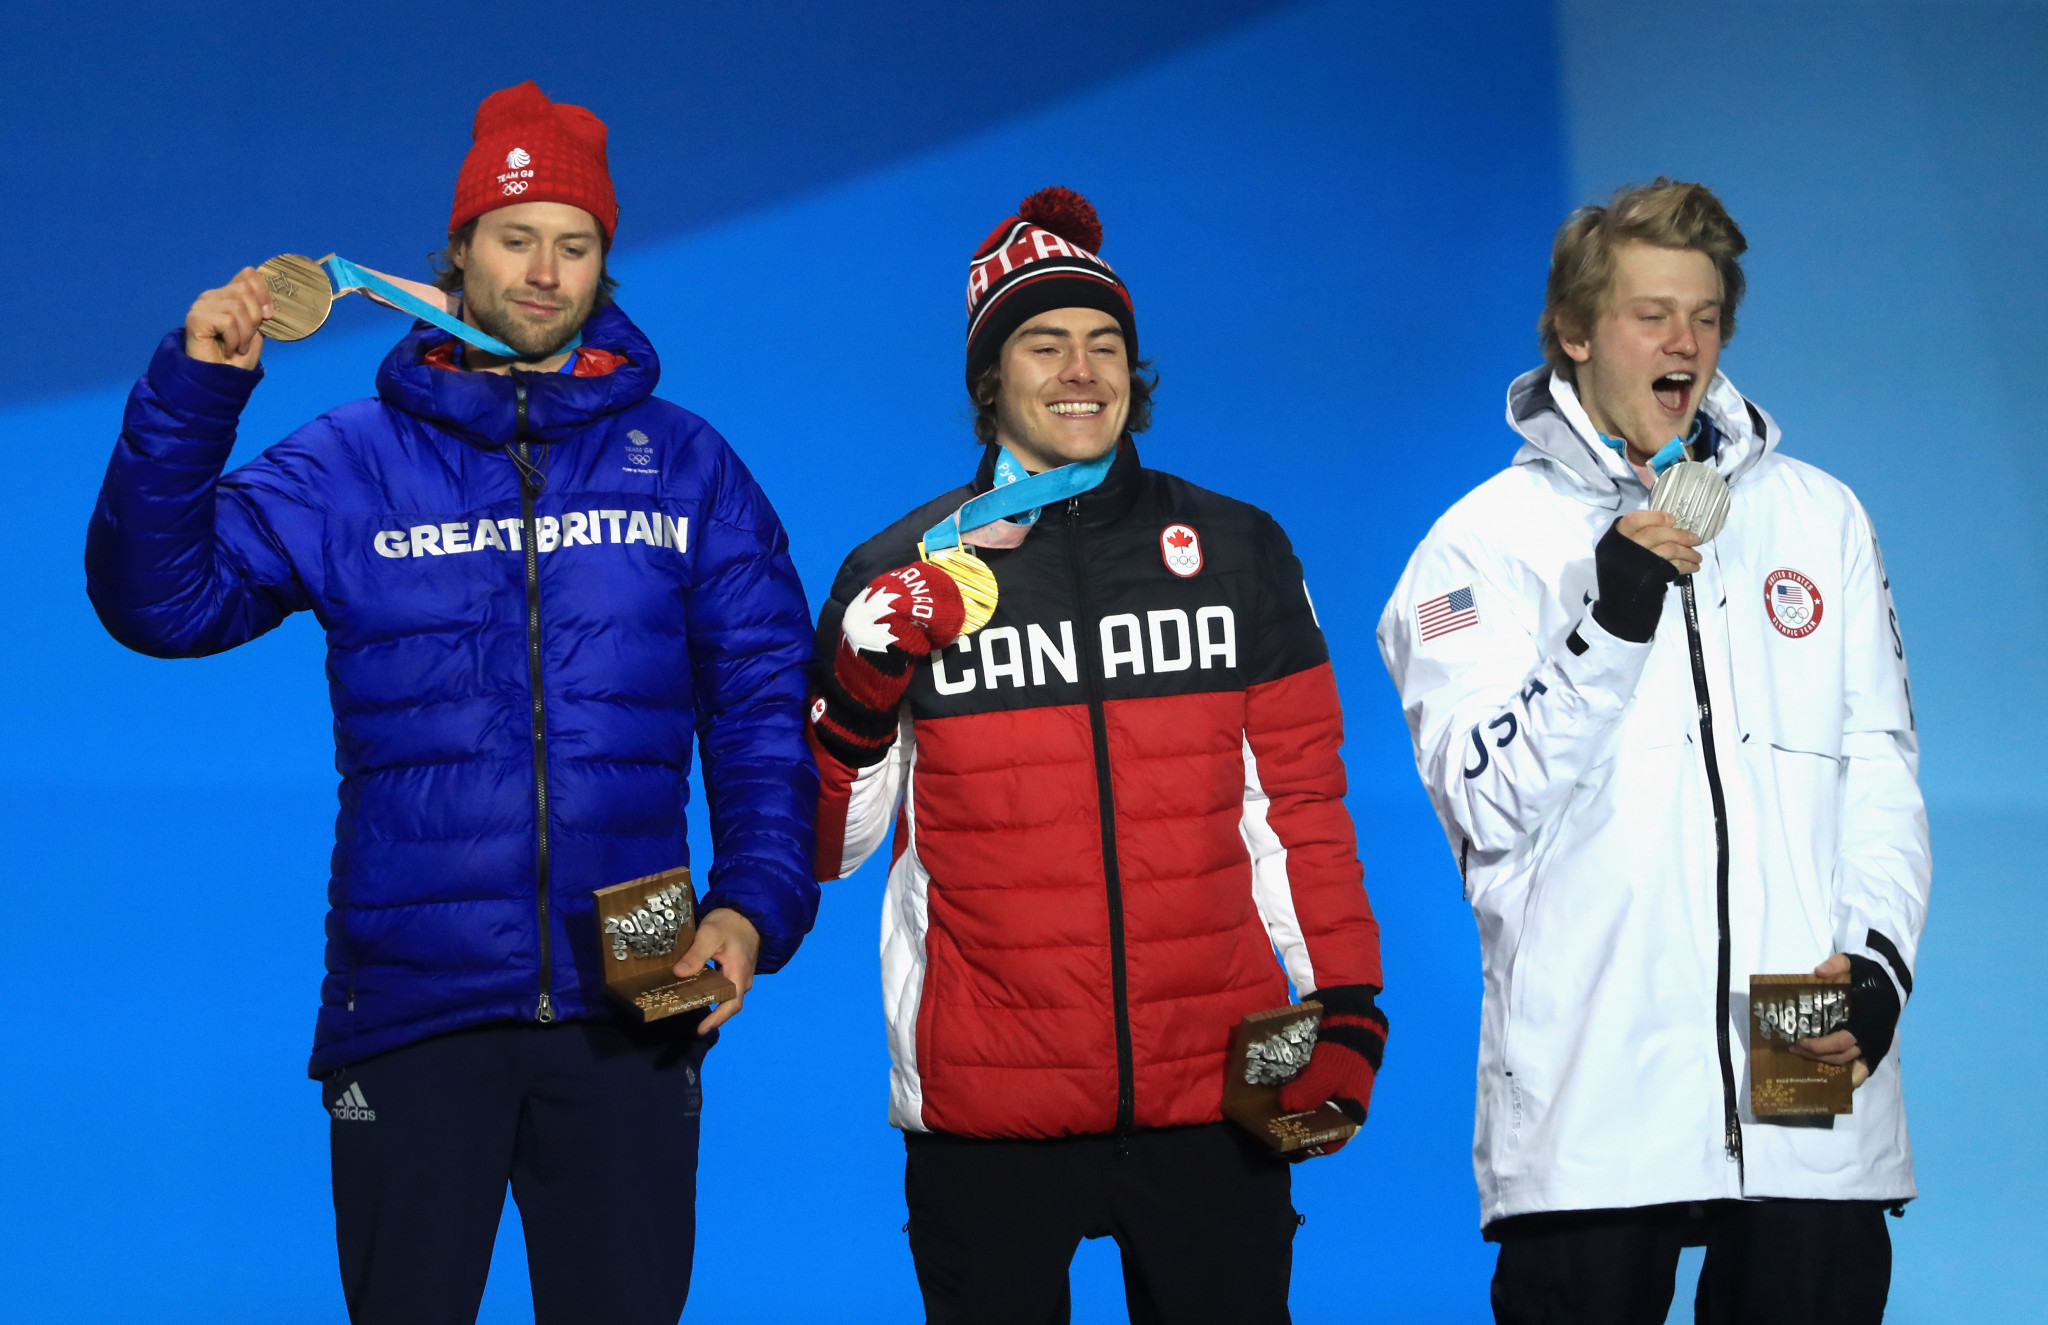 Billy Morgan, left, was one of five British medallists at Pyeongchang 2018 ©Getty Images